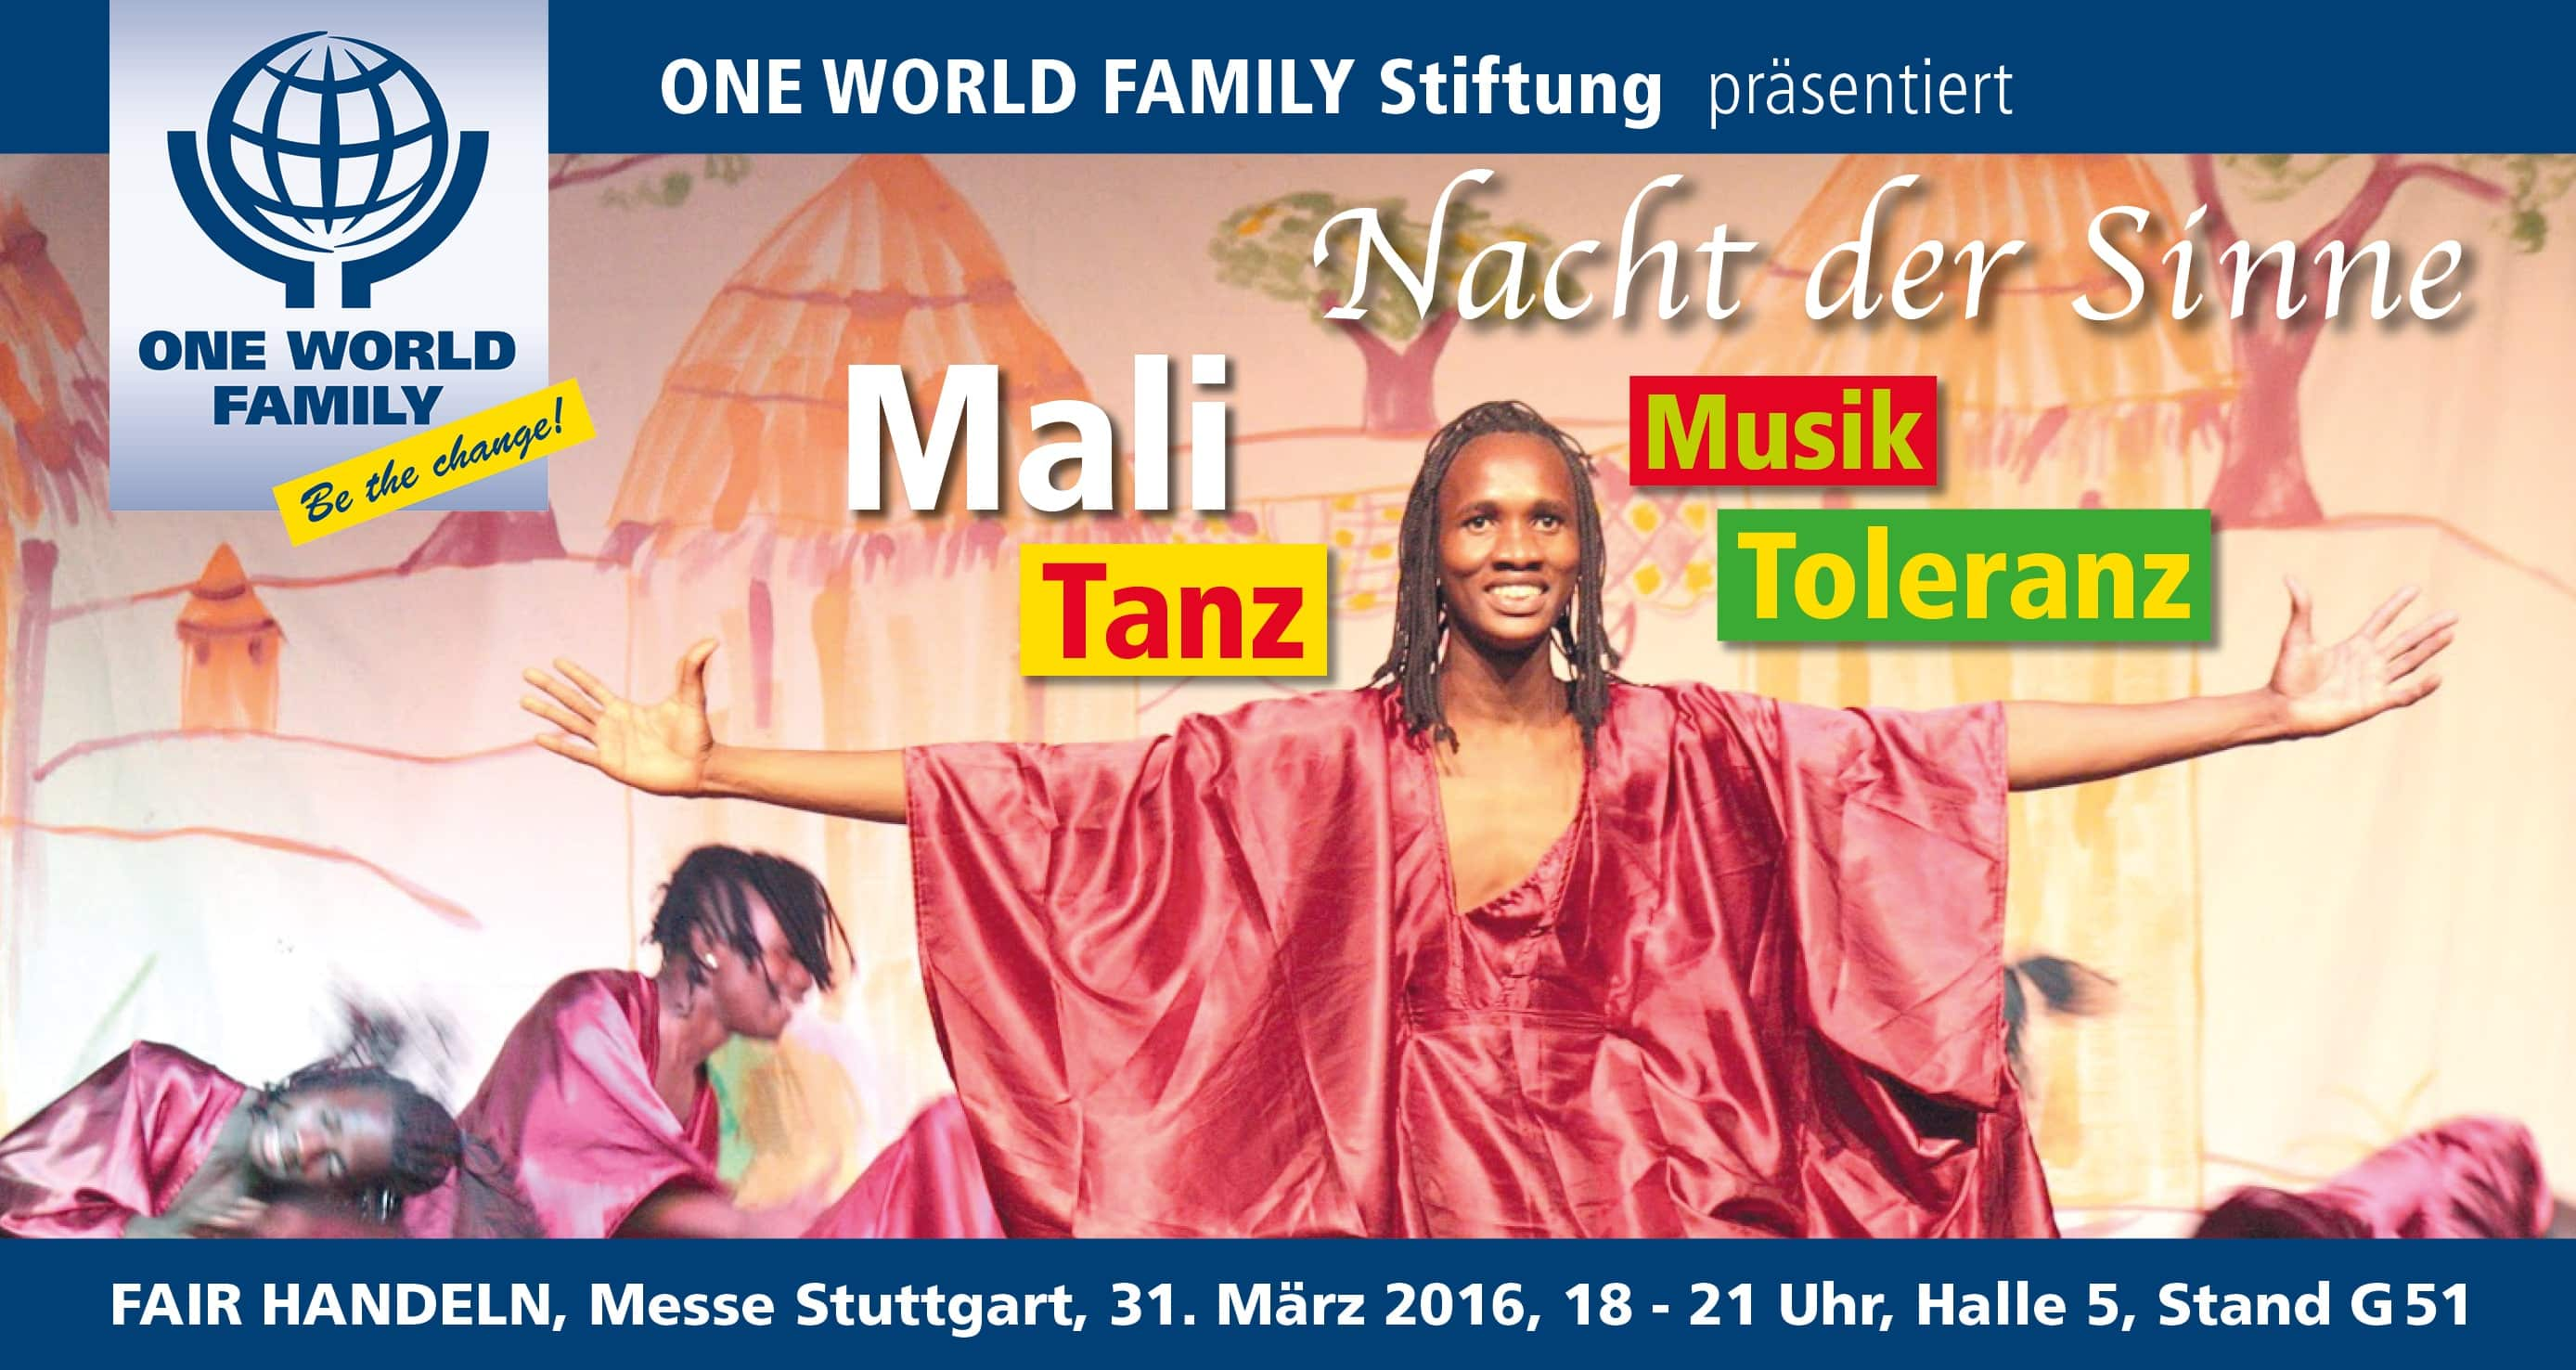 ONE WORLD FAMILY FAIR HANDELN 2016